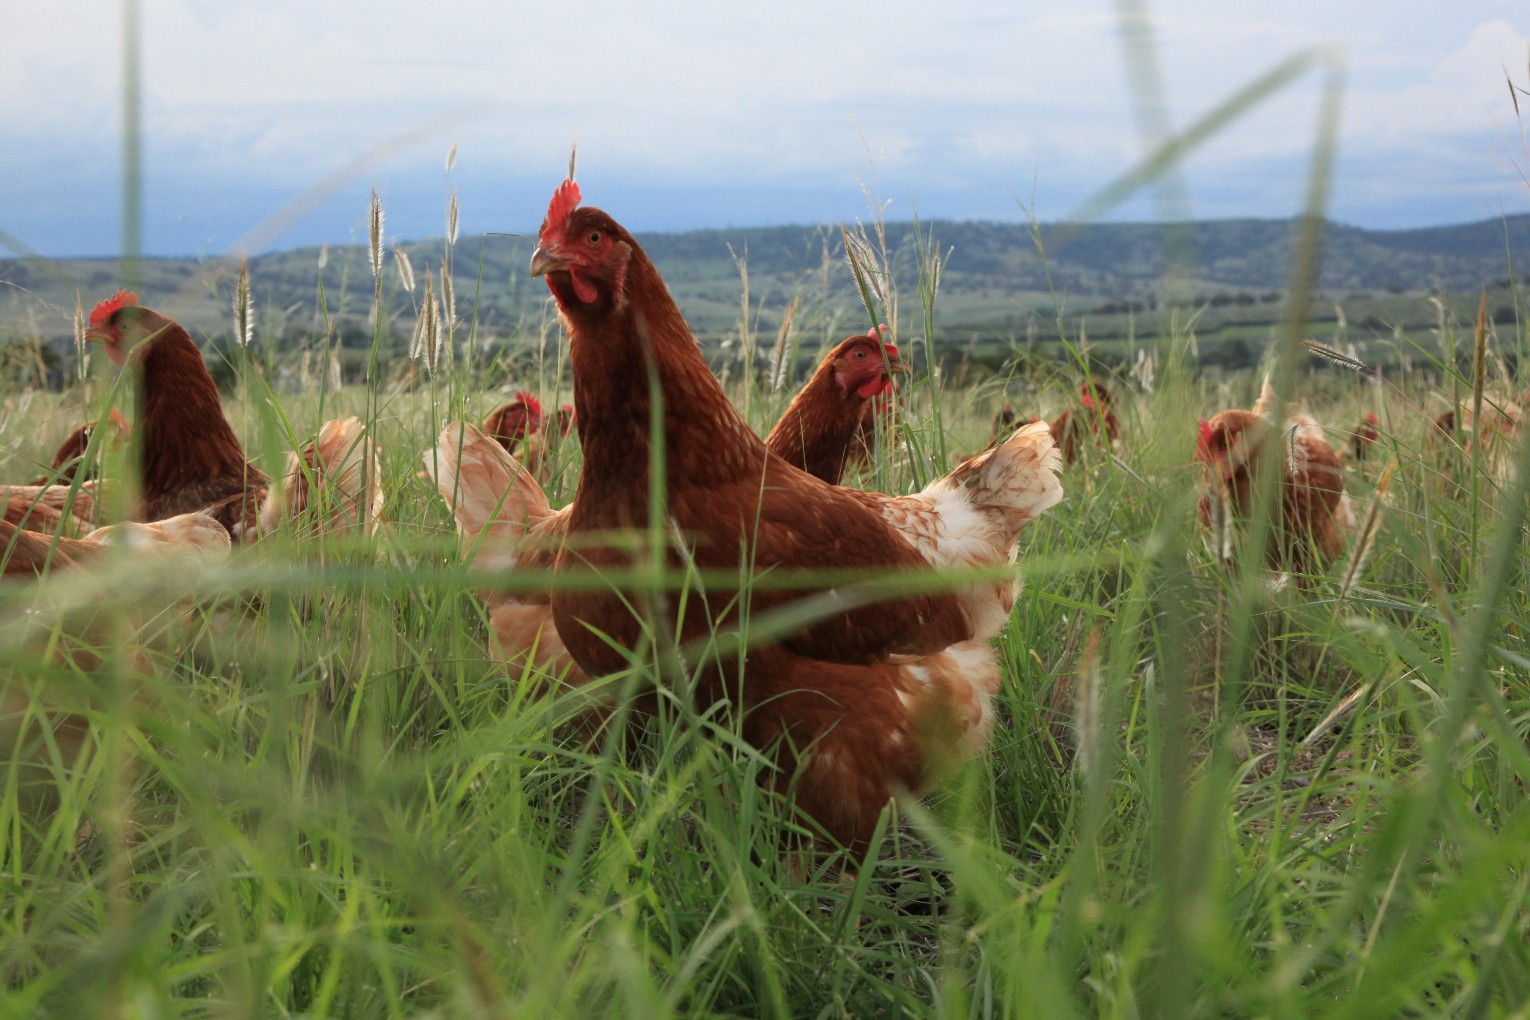 Bega Valley Eggs   Bega Valley Eggs takes great care of their laying hens. They have access to lush, grassy pastures where they can roam around in the sunshine, indulge in dust baths, eat vegetation and bugs and basically enjoy their day-to-day lives. Rotational management is used whereby the hens are given a different quarter acre every few days so their food is always fresh and plentiful and the pastures regenerate.  At night, the hens are housed in pristine, protected huts where they can roost on their perches and the manure drops through to fertilise the soil. The soil is rested to allow for pasture improvement year on year.